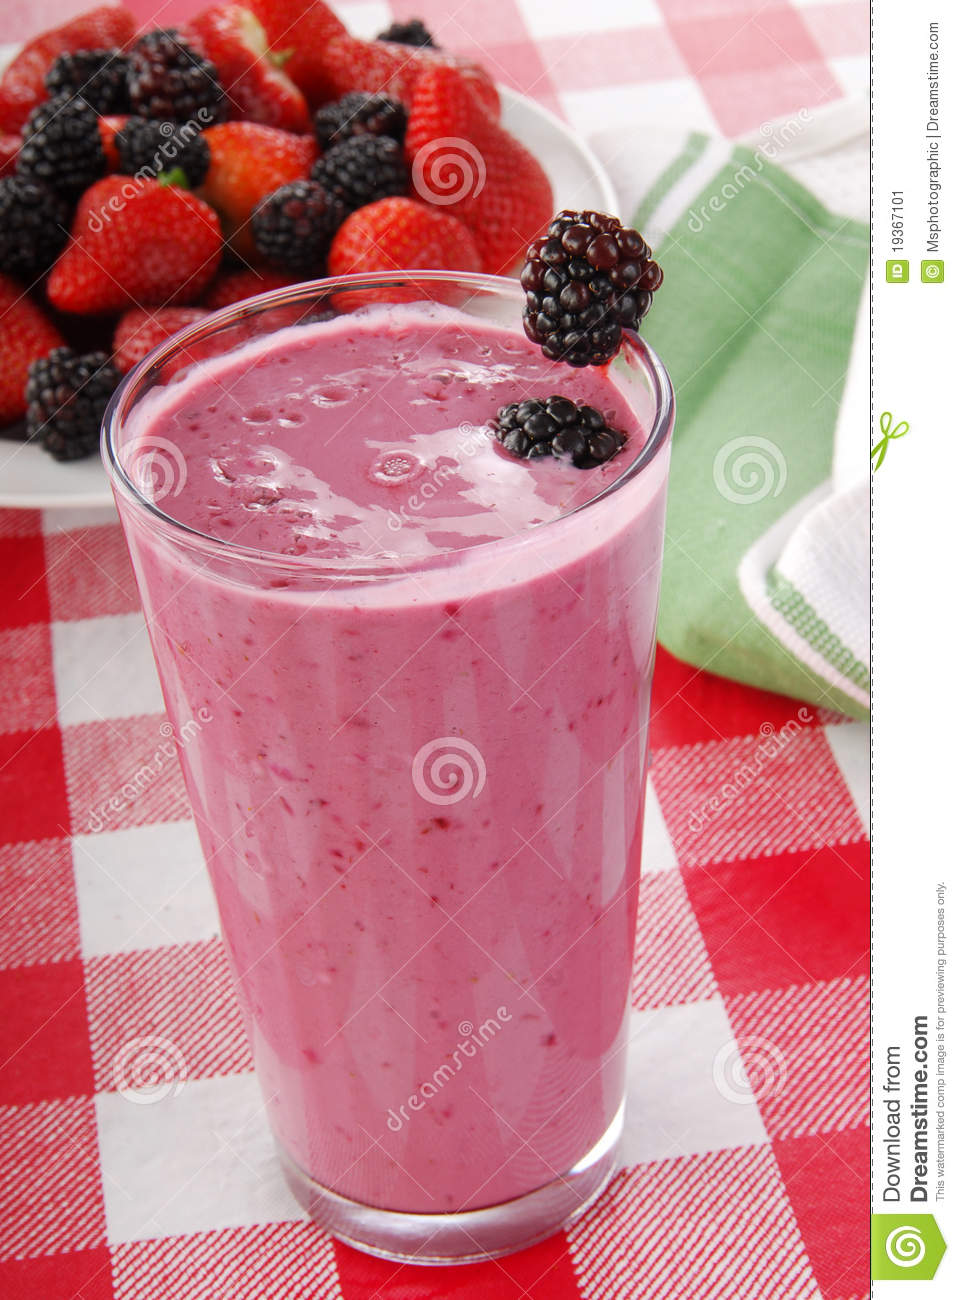 Smoothie do Yogurt com amoras-pretas